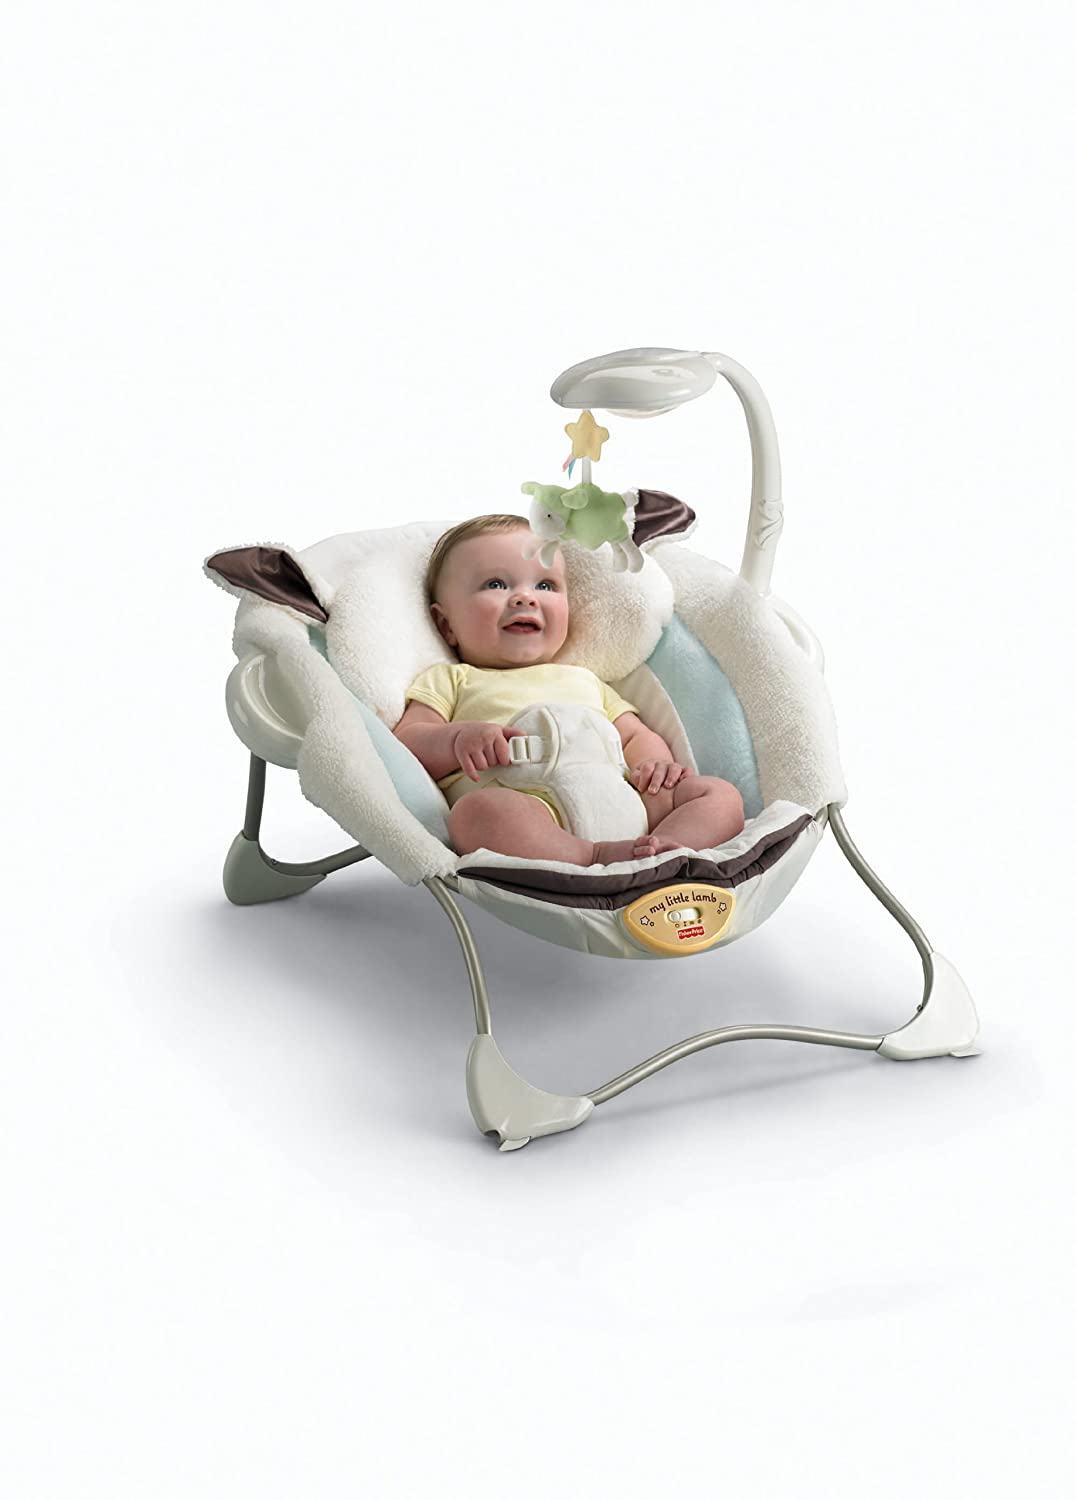 Amazon.com  Fisher-Price My Little Lamb Infant Seat  Infant Sitting Chairs  Baby  sc 1 st  Amazon.com & Amazon.com : Fisher-Price My Little Lamb Infant Seat : Infant ...